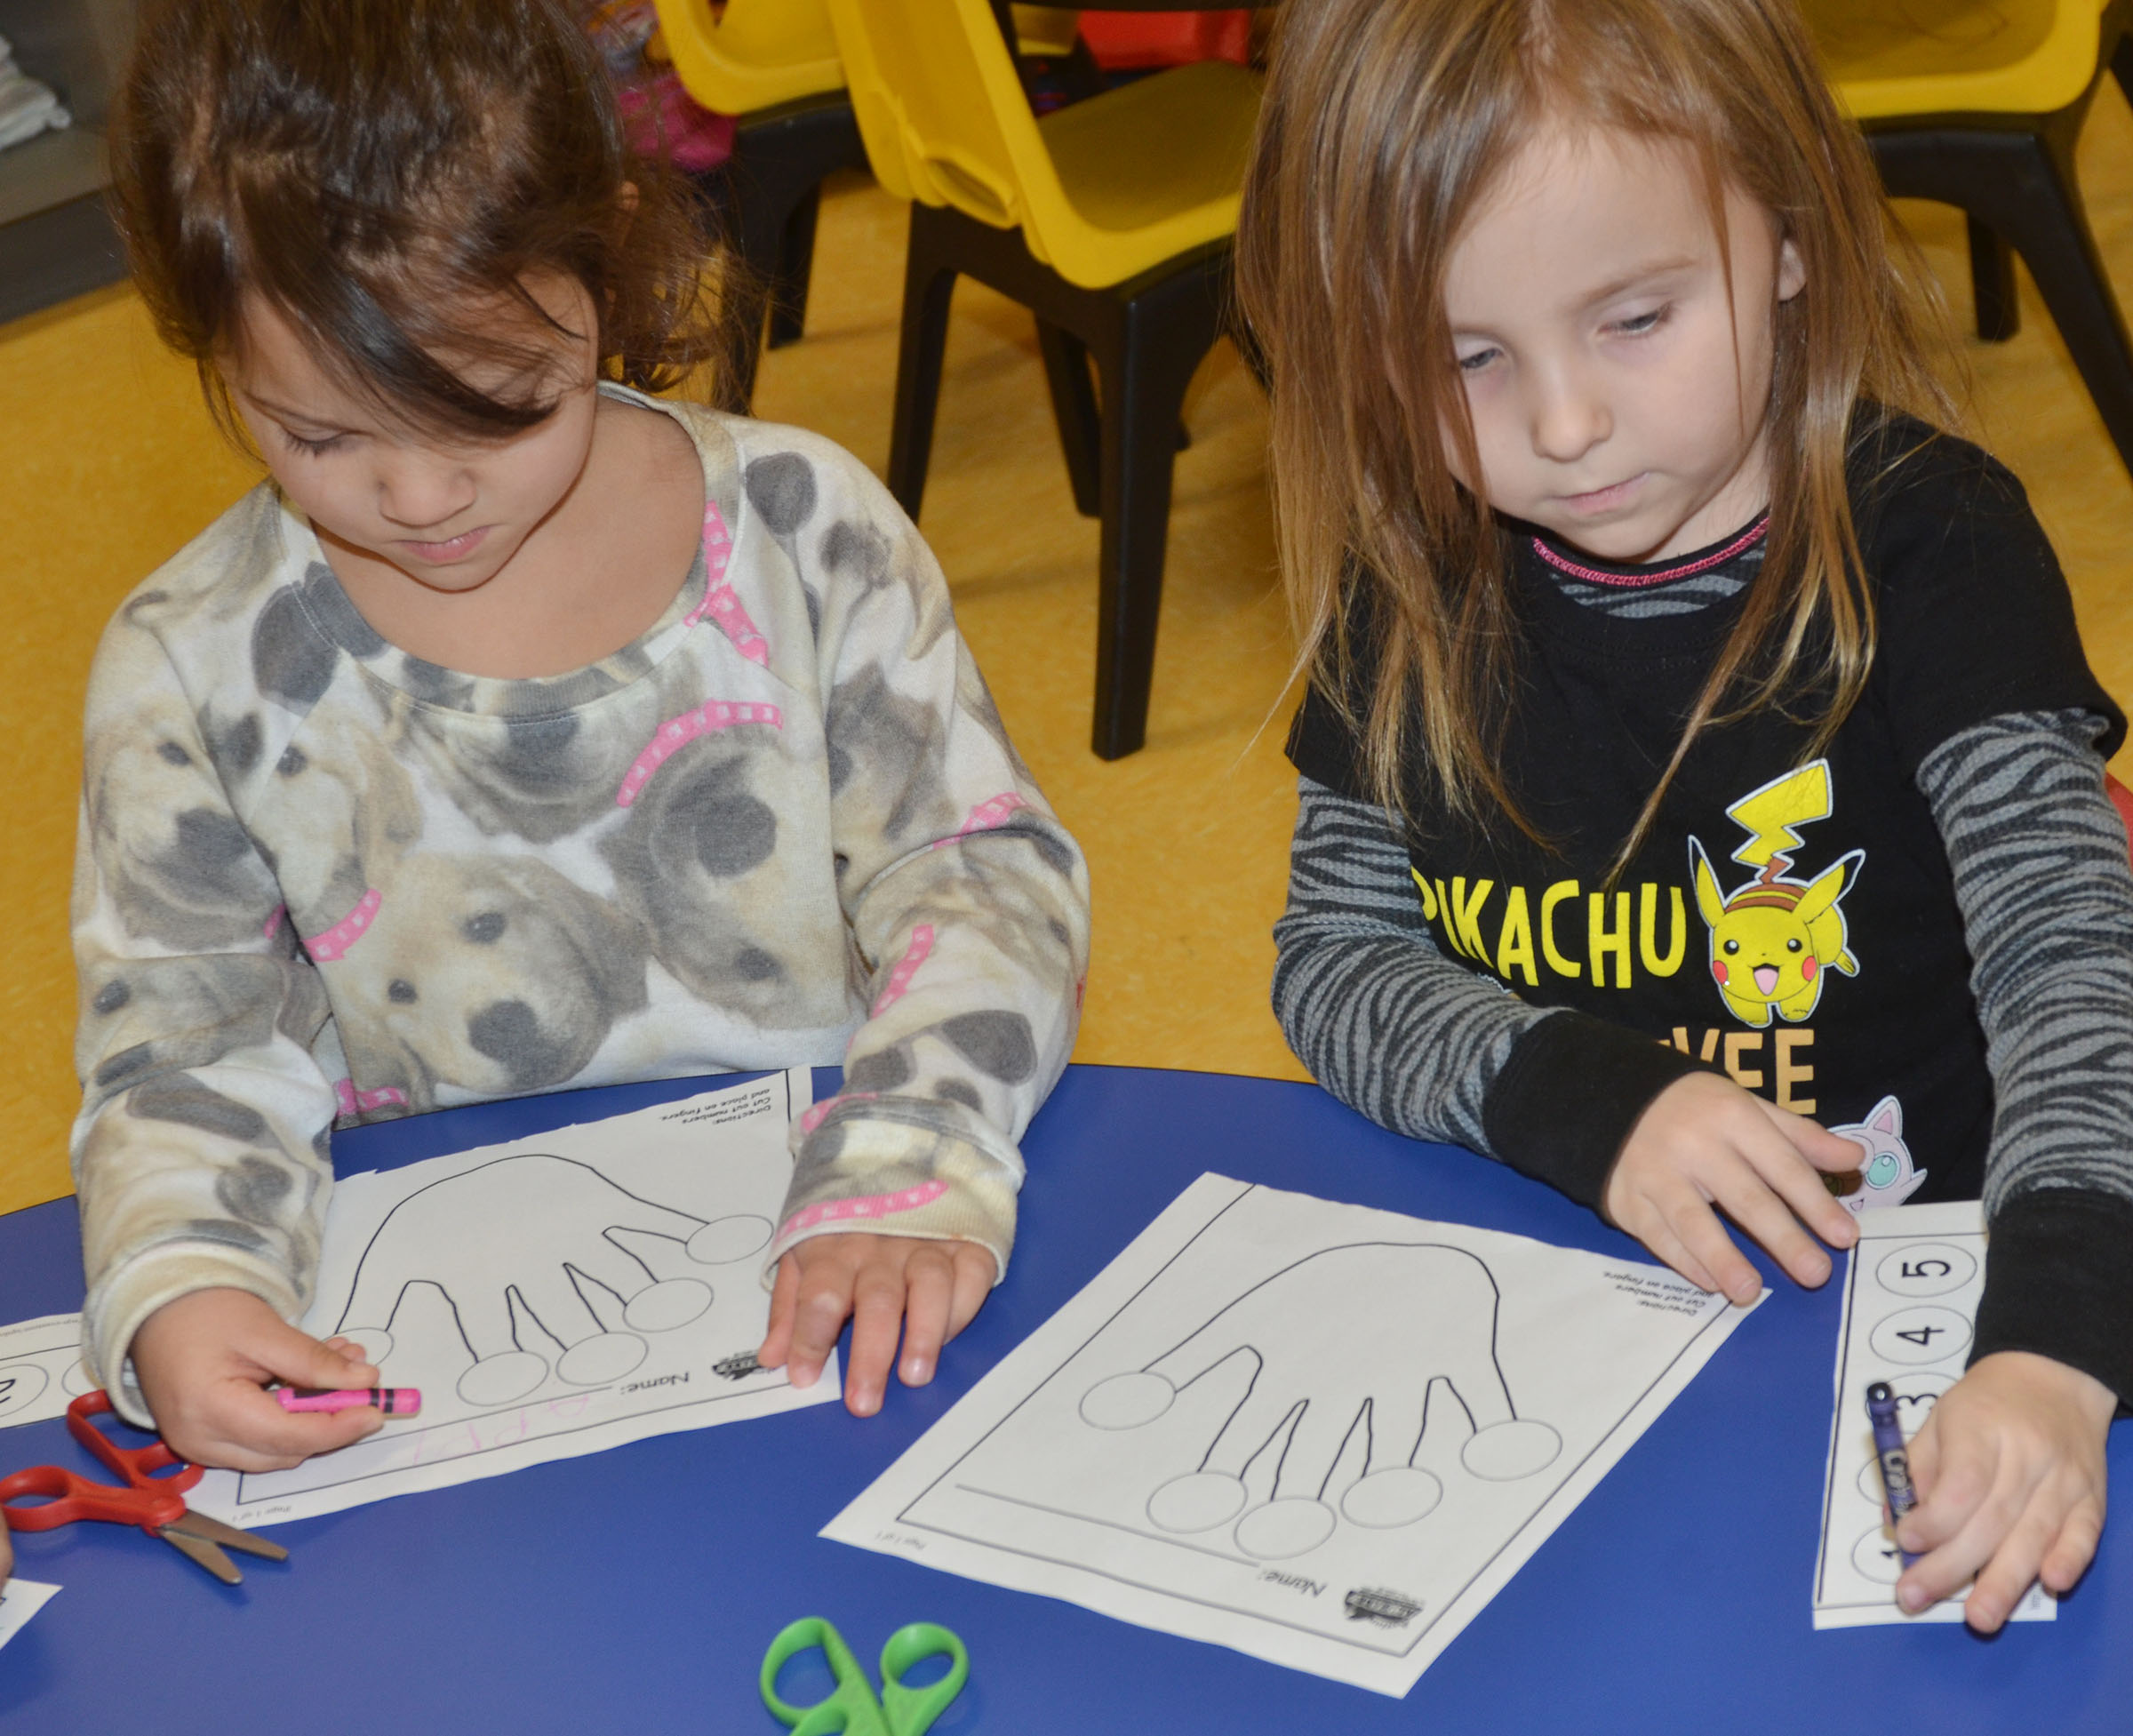 CES preschool students Addisyn Taylor, at left, and Tabitha Leggett color their hands.